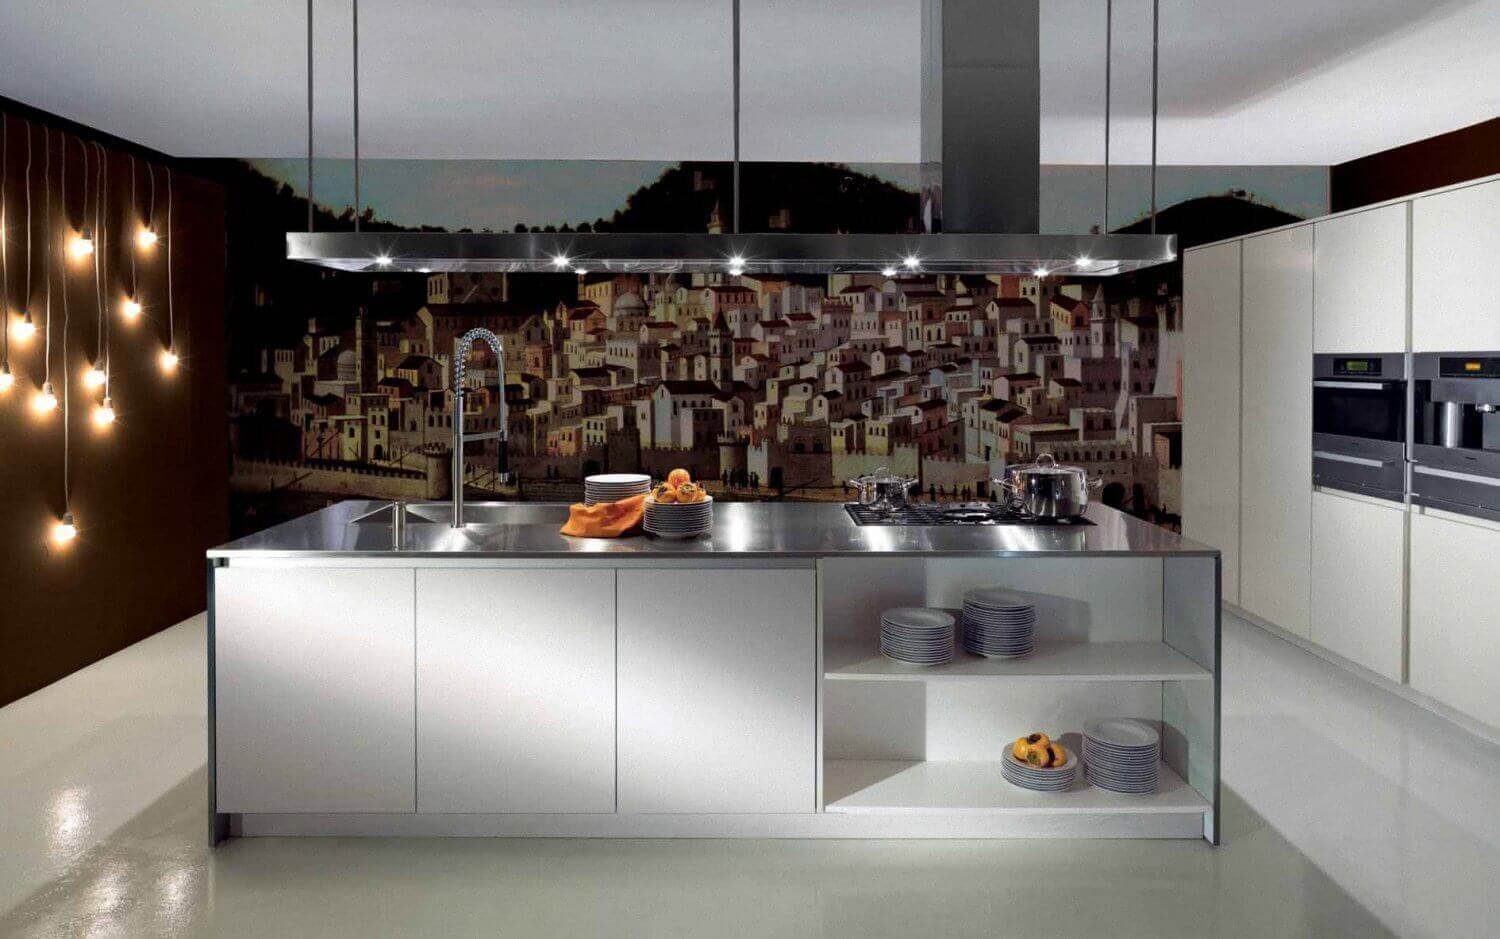 89 Contemporary Kitchen Design Ideas Gallery Backsplashes Cabinets Lights Tables Islands